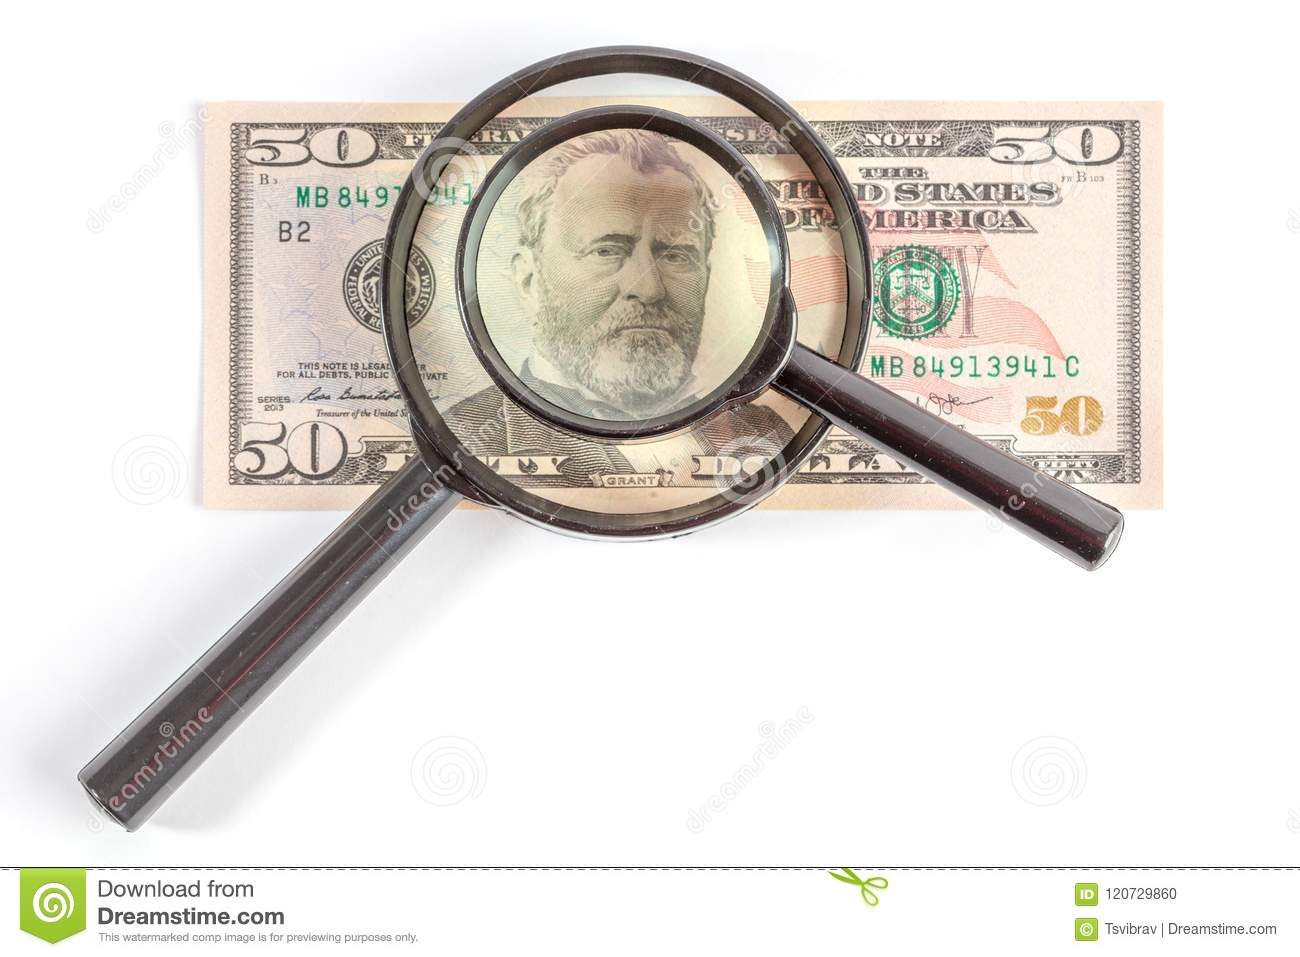 Magnifying glass placed on Ulysses S. Grant portrait.